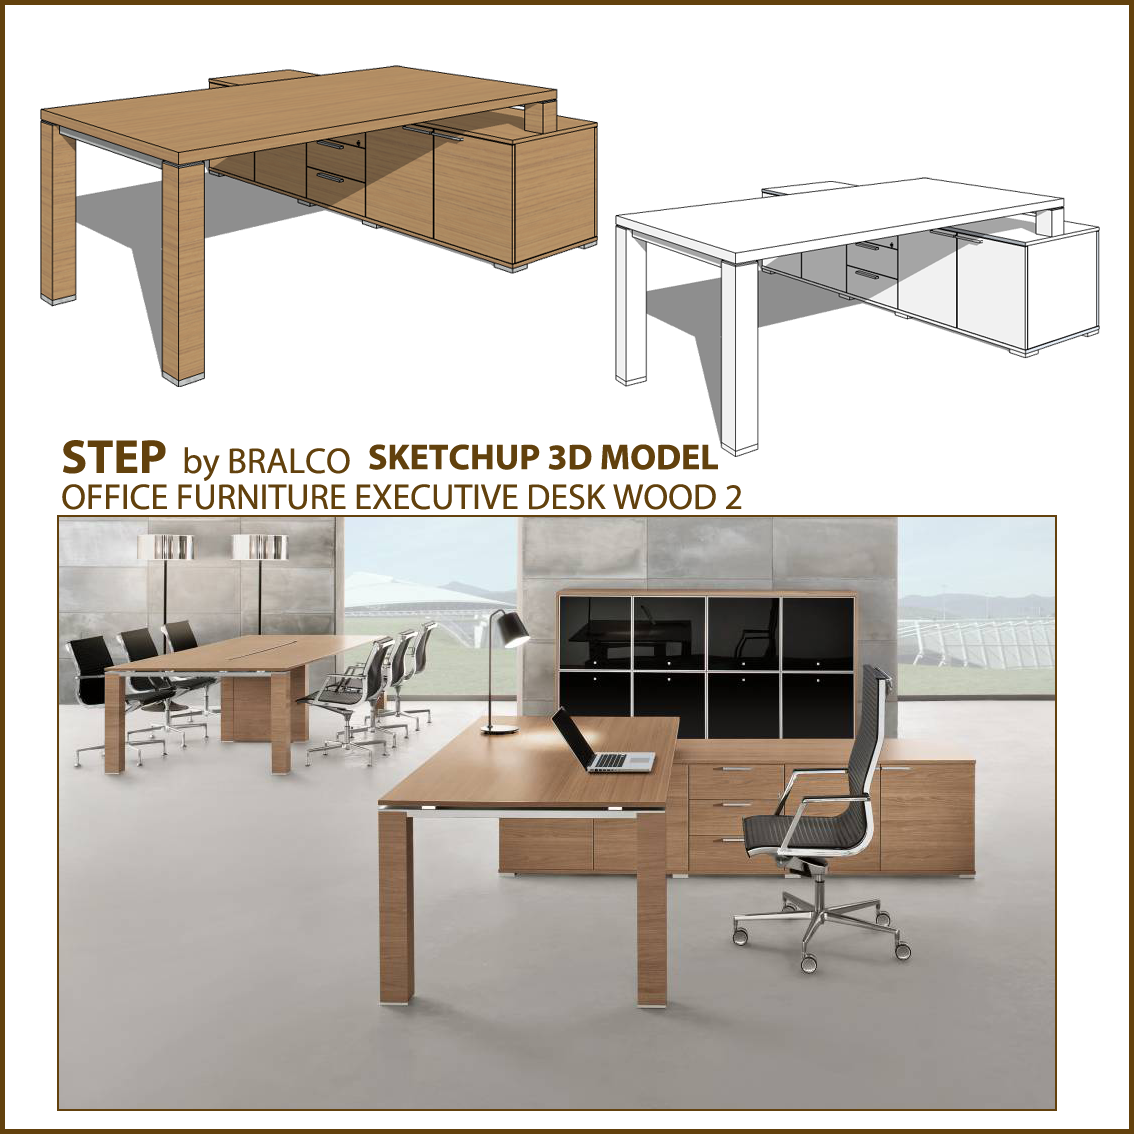 Free sketchup 3d model office wood executive desk jet for Table design sketchup